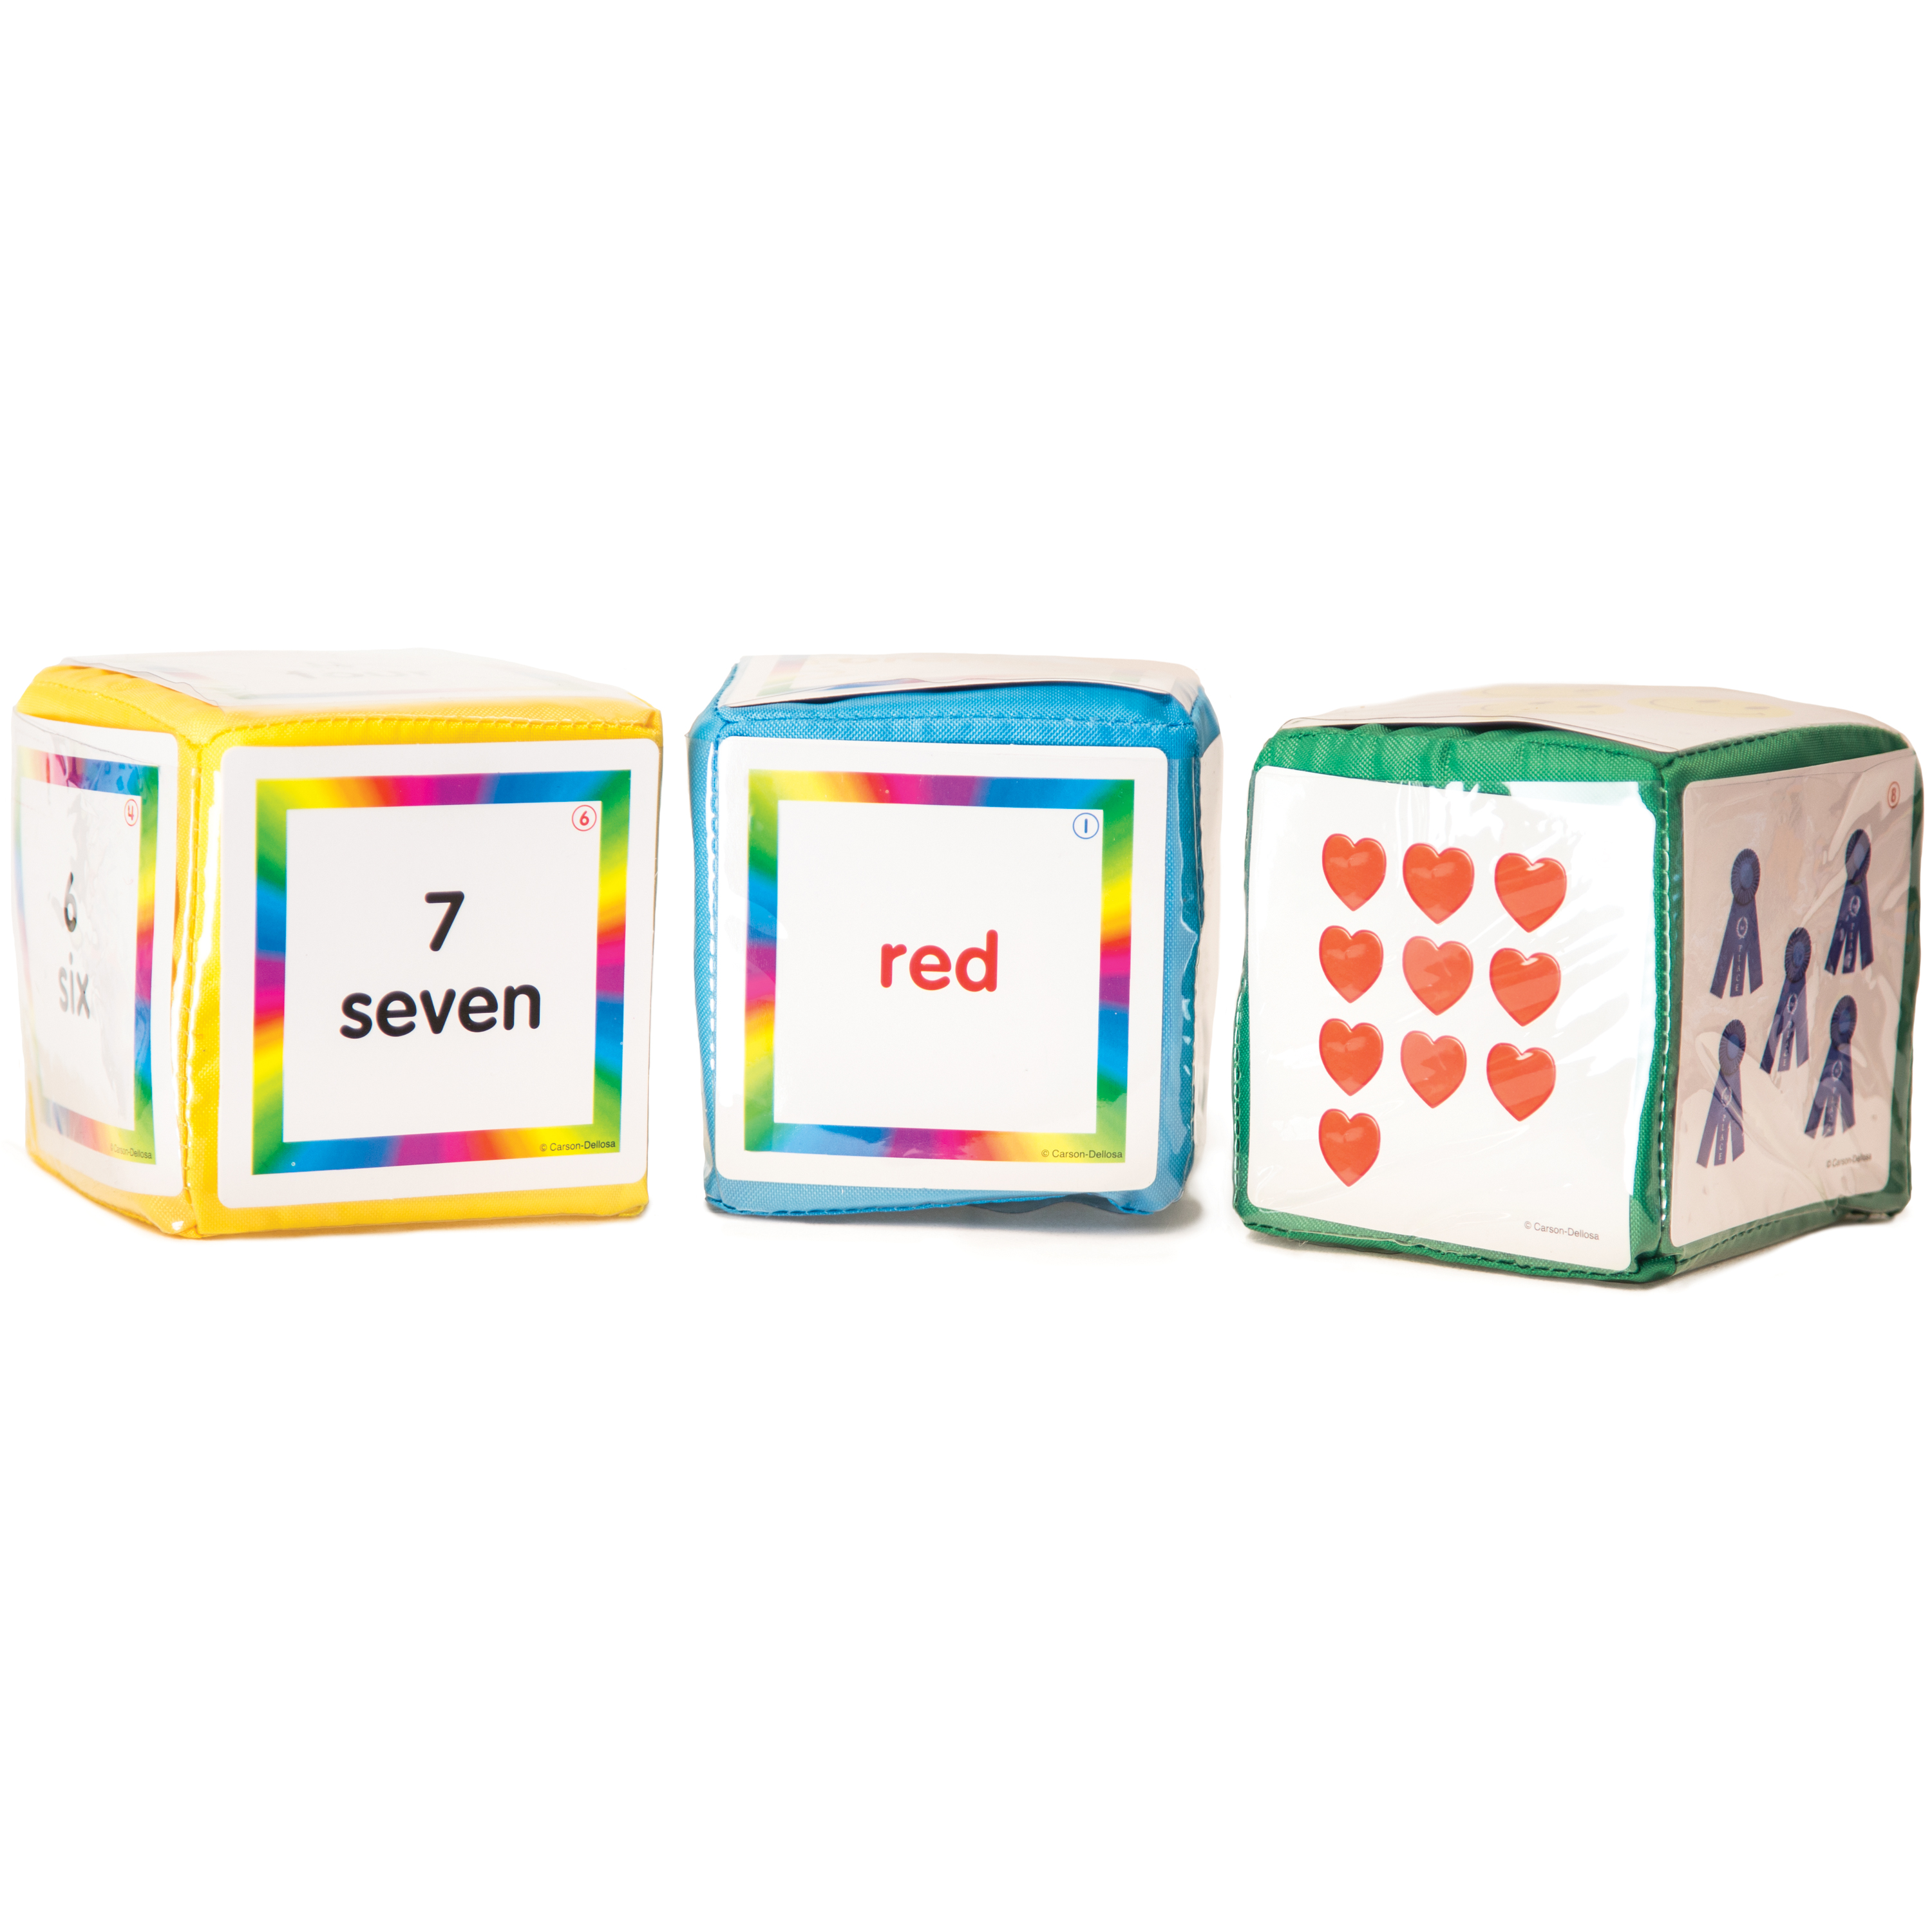 Carson Dellosa Differentiated Instruction Cubes 1 Manuals And